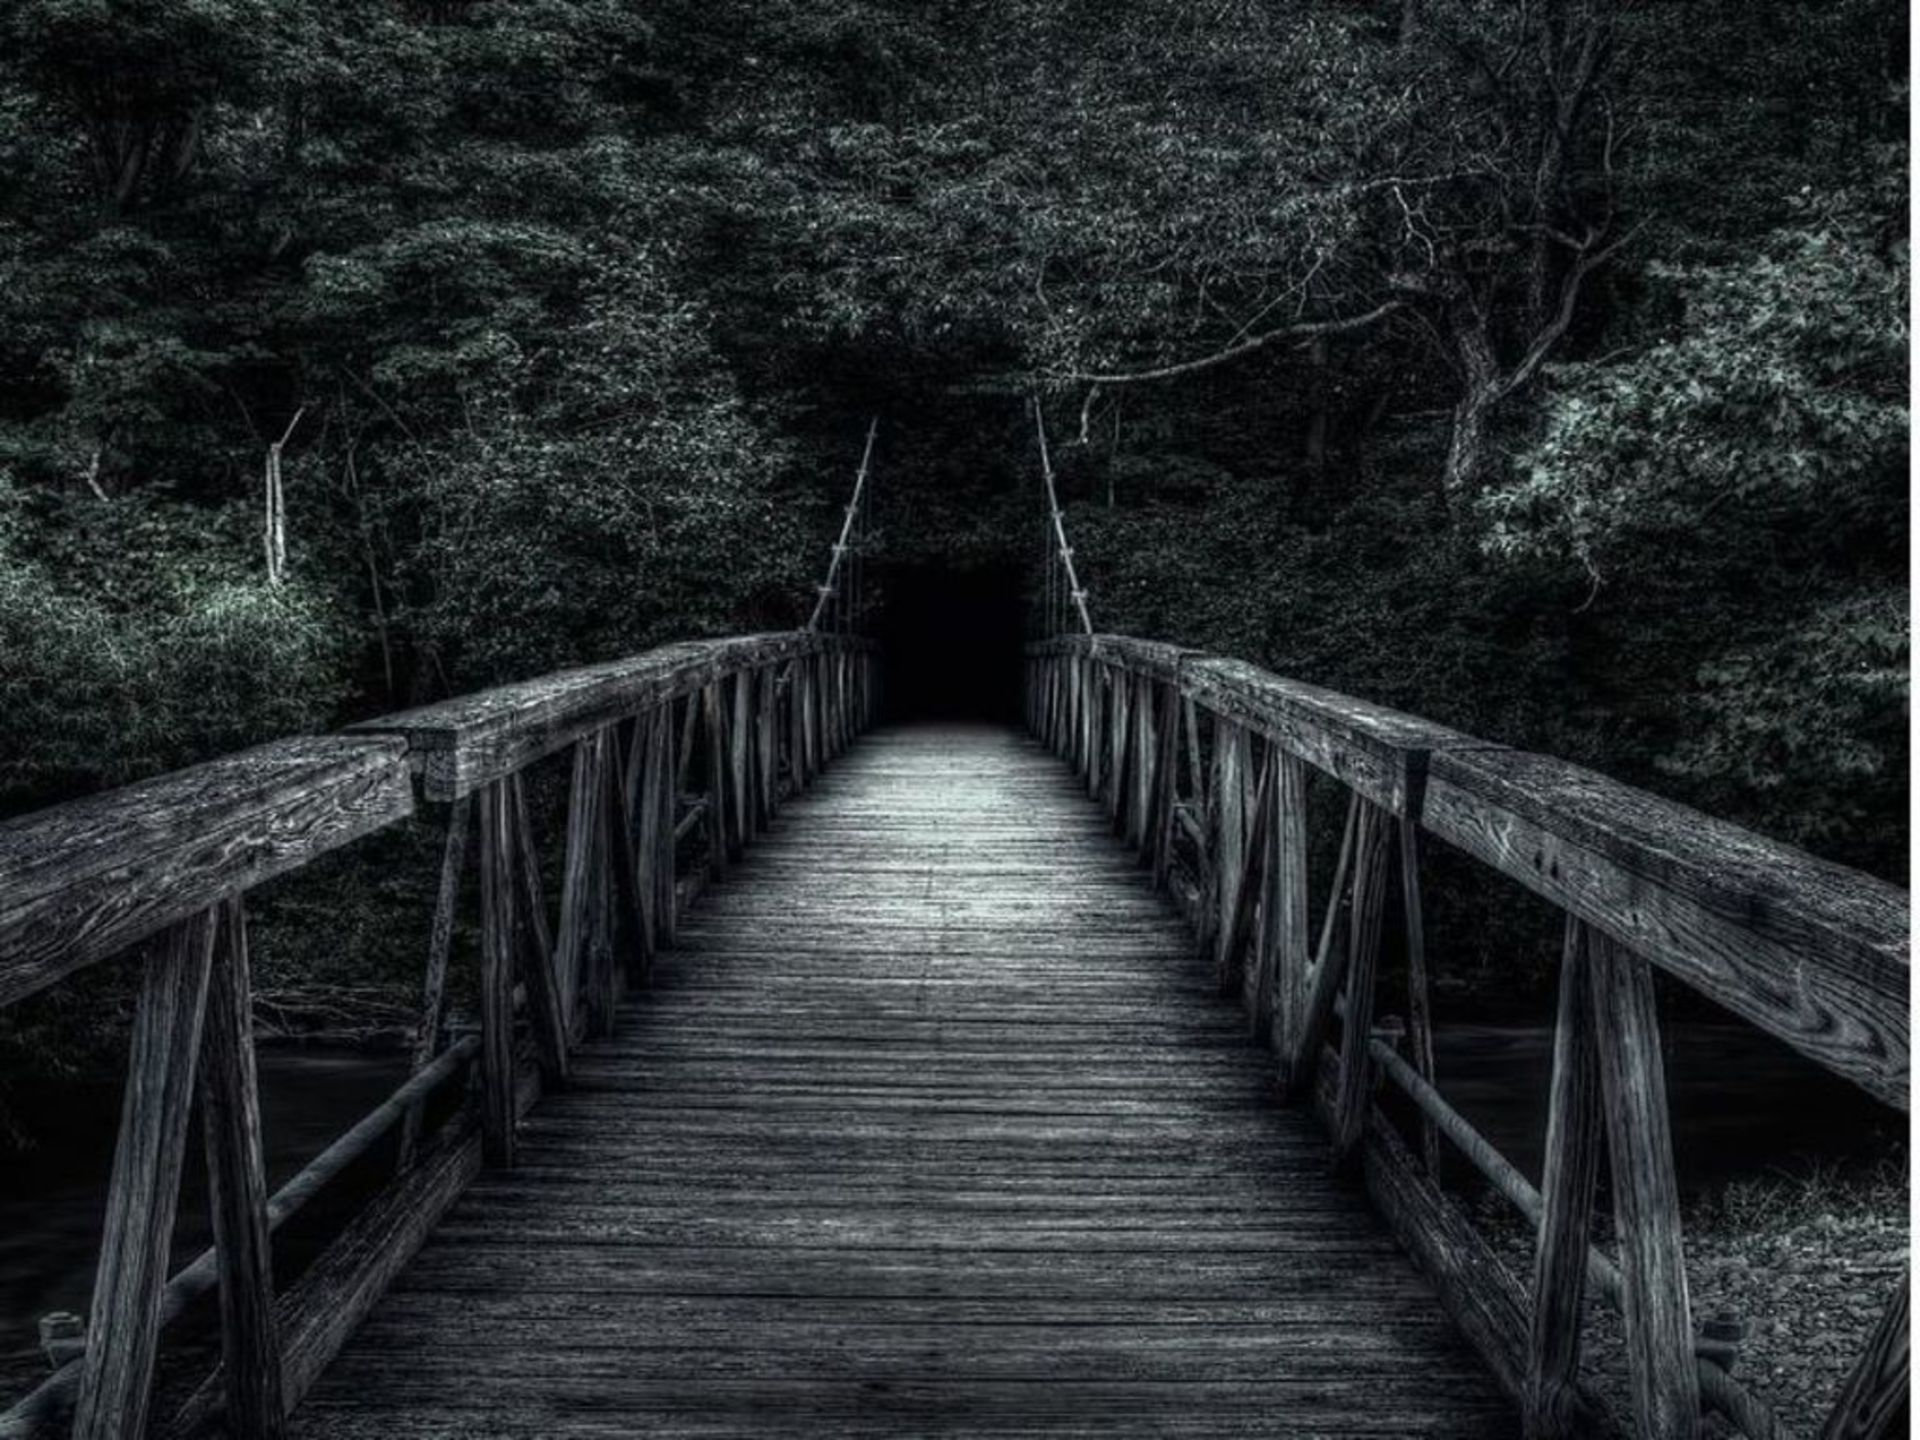 Dark Road Wallpaper Design Ideas X Px Hd Wallpapers This